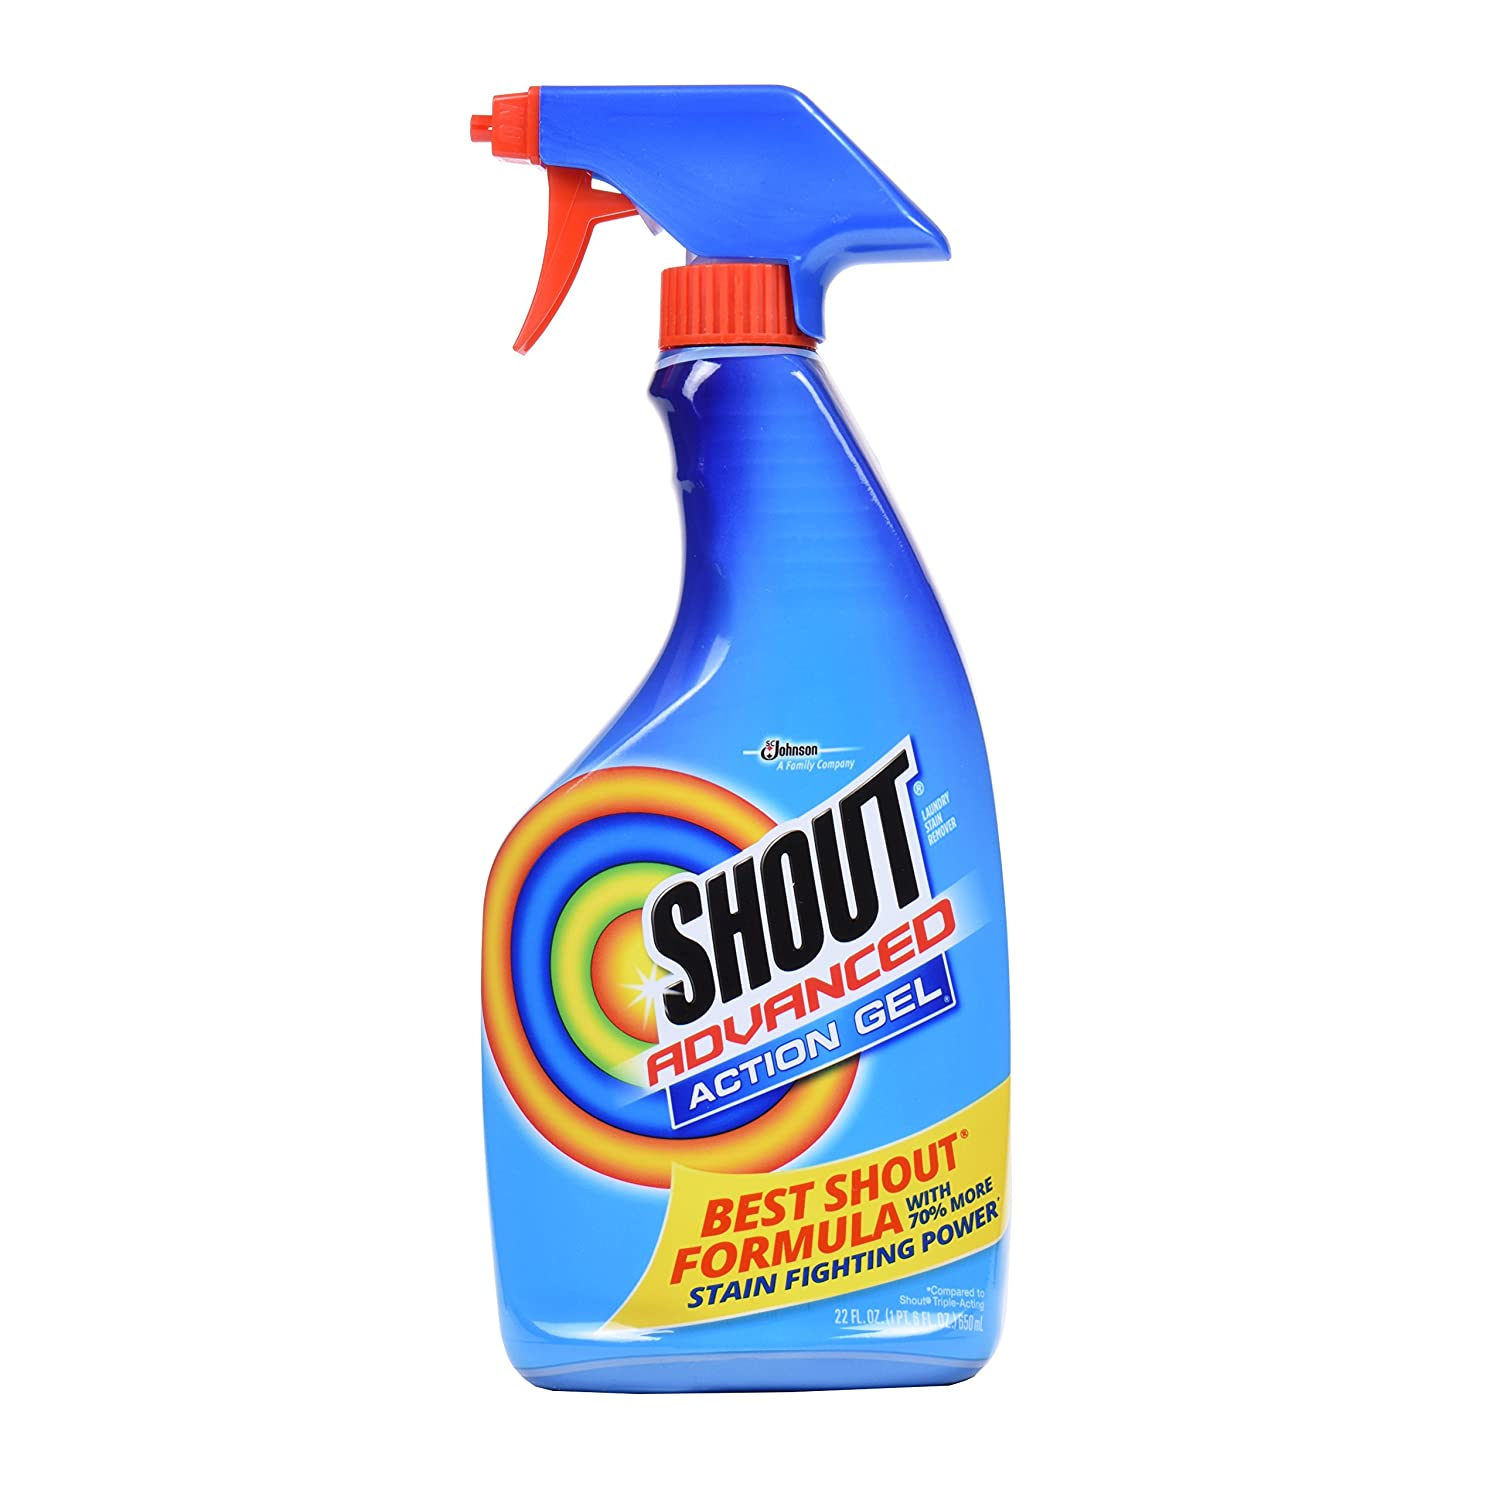 Amazon.com: SC Johnson Shout Advanced 22 Ounces Stain Remover Gel Spray (2 Pack) Brand New and Fast Shipping: Home & Kitchen